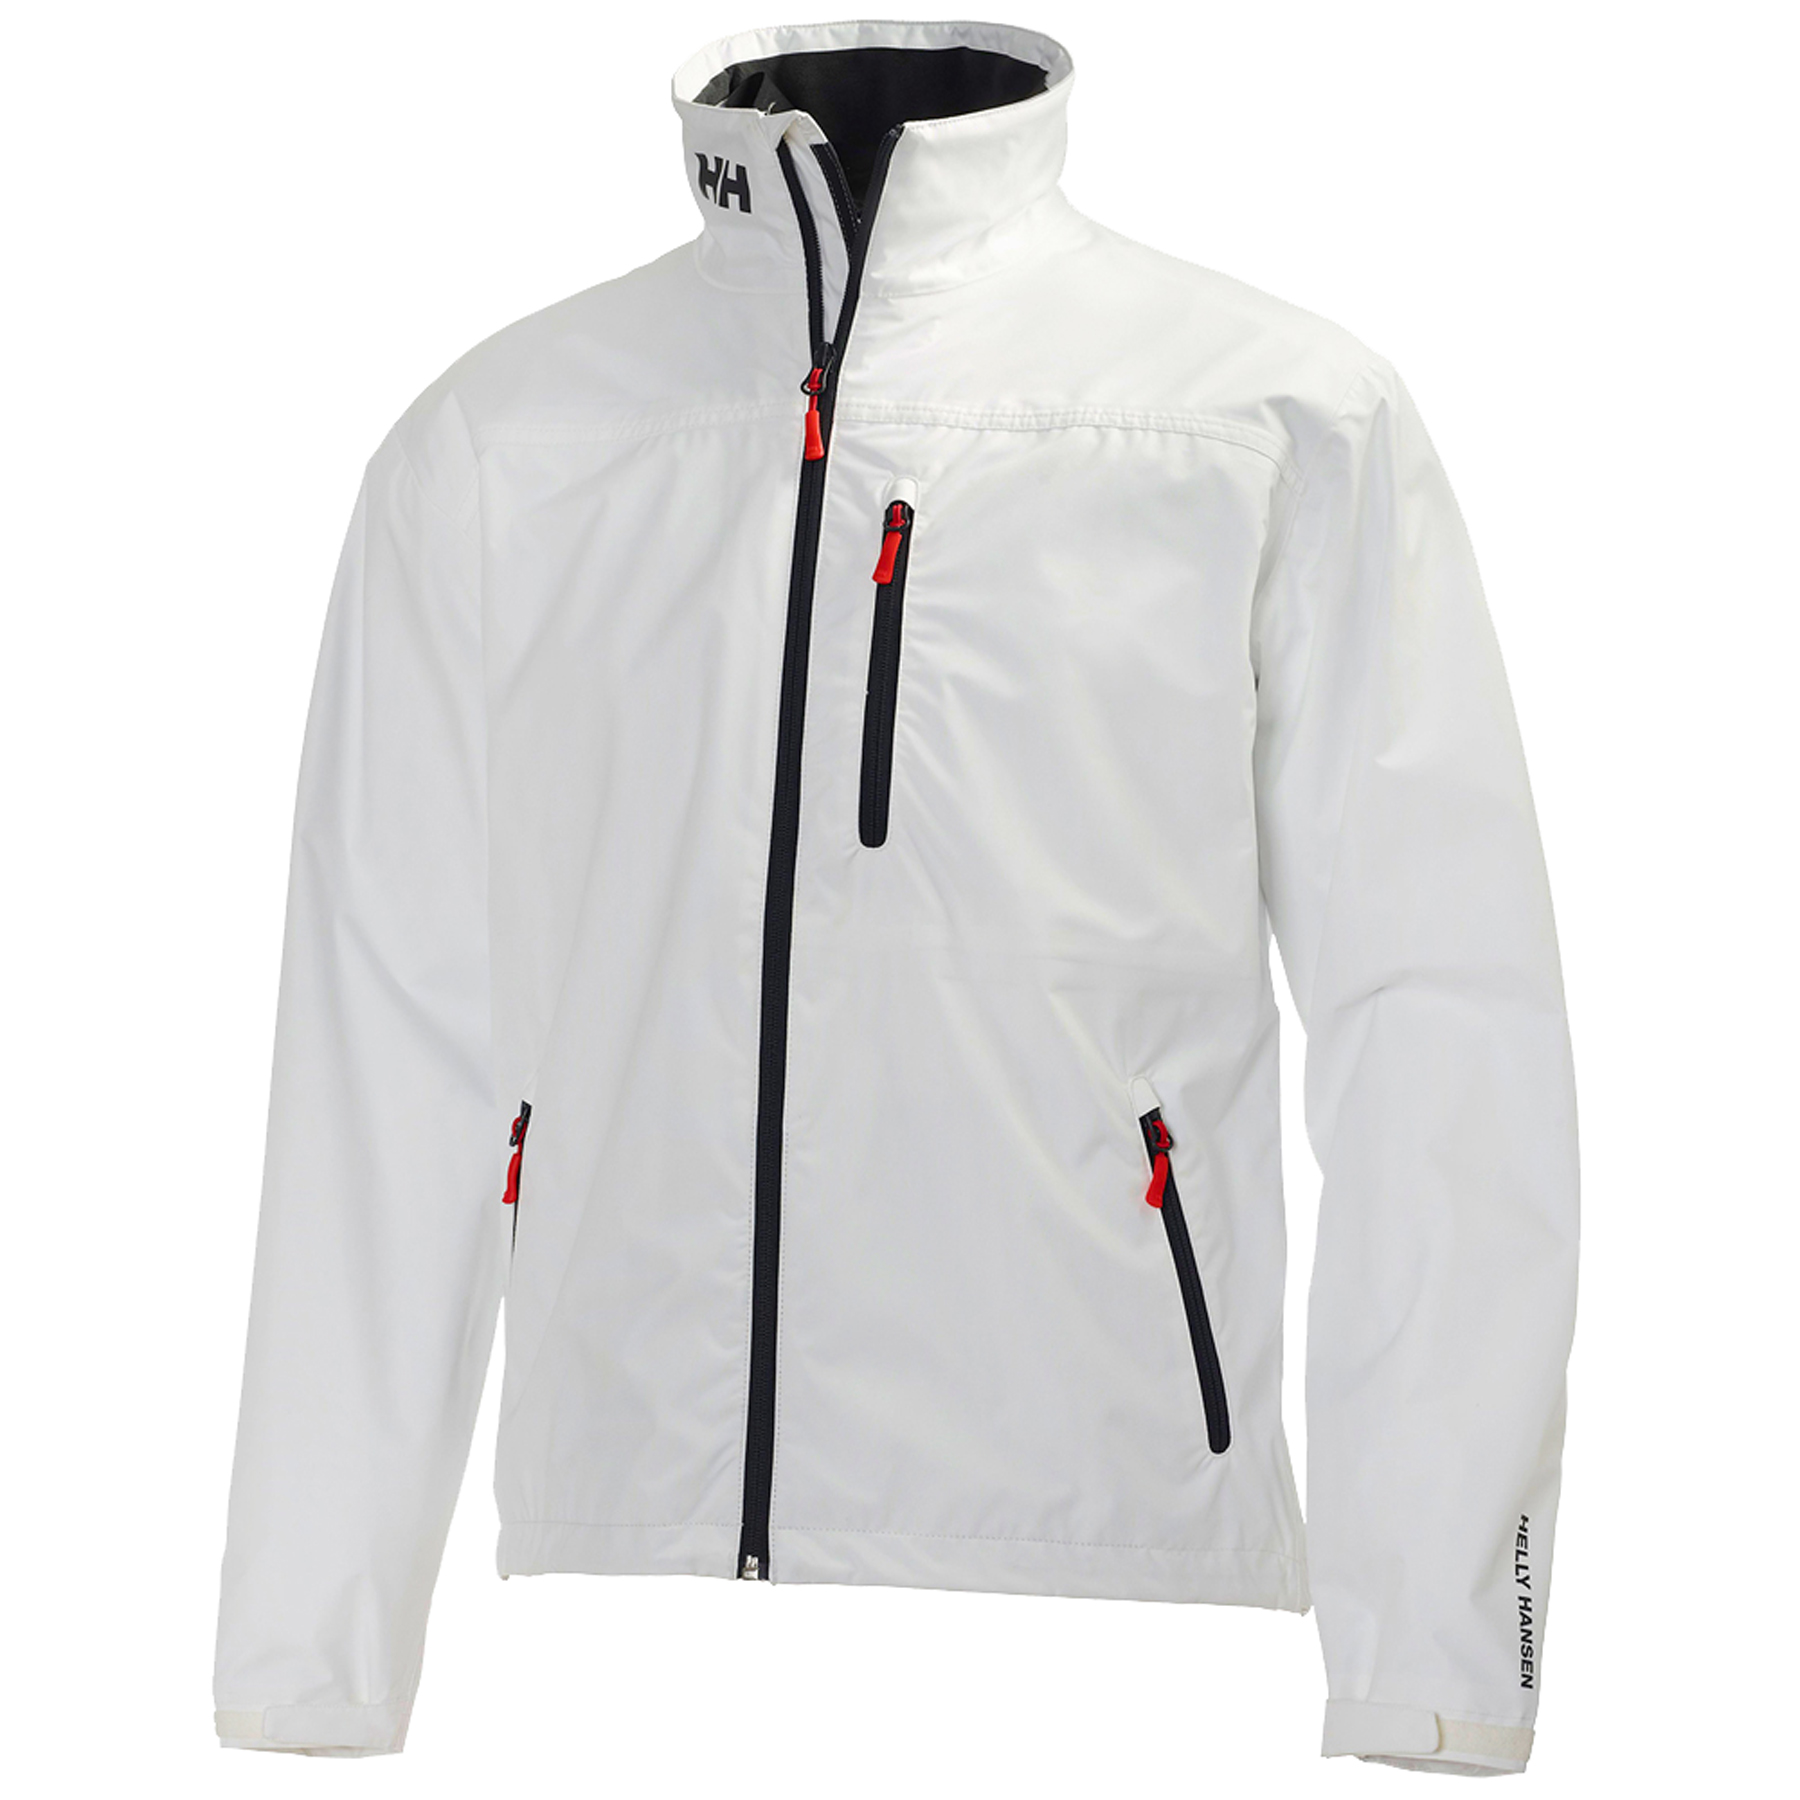 Helly Hansen Men's Crew Jacket (30263)